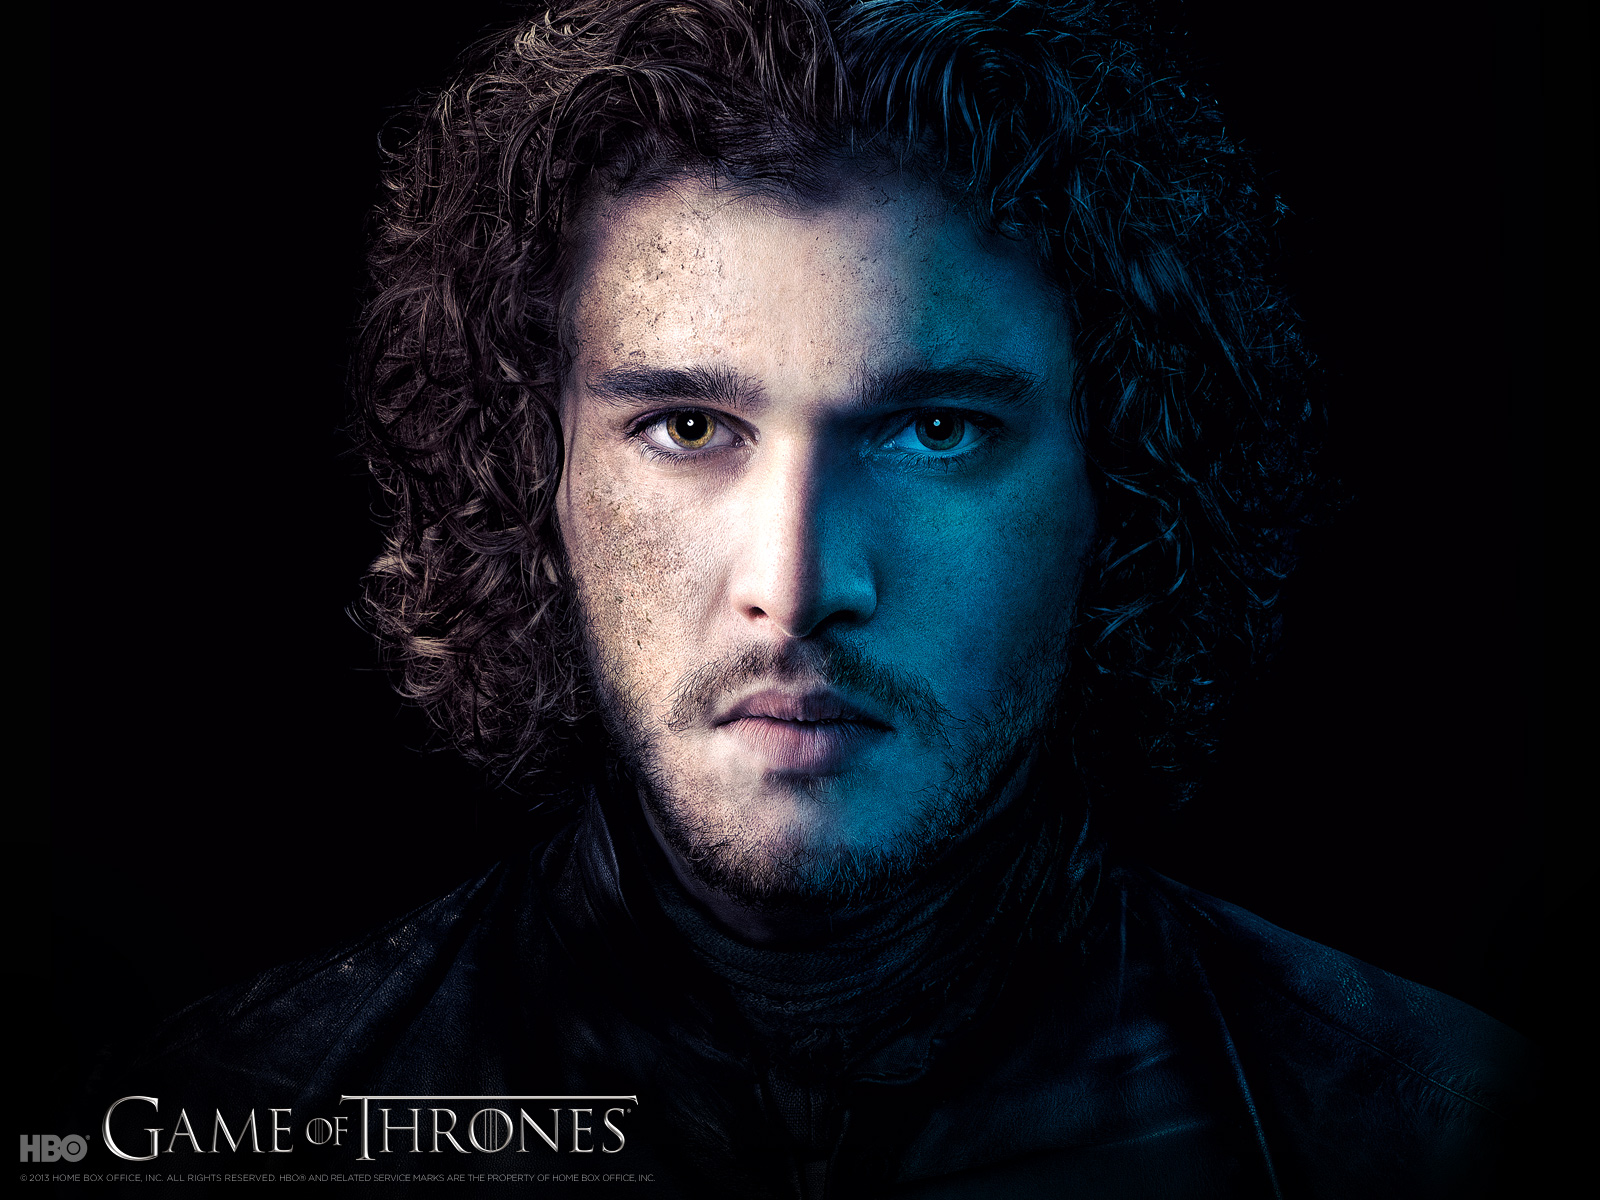 HD Game of Thrones Promo Poster – Jon Snow